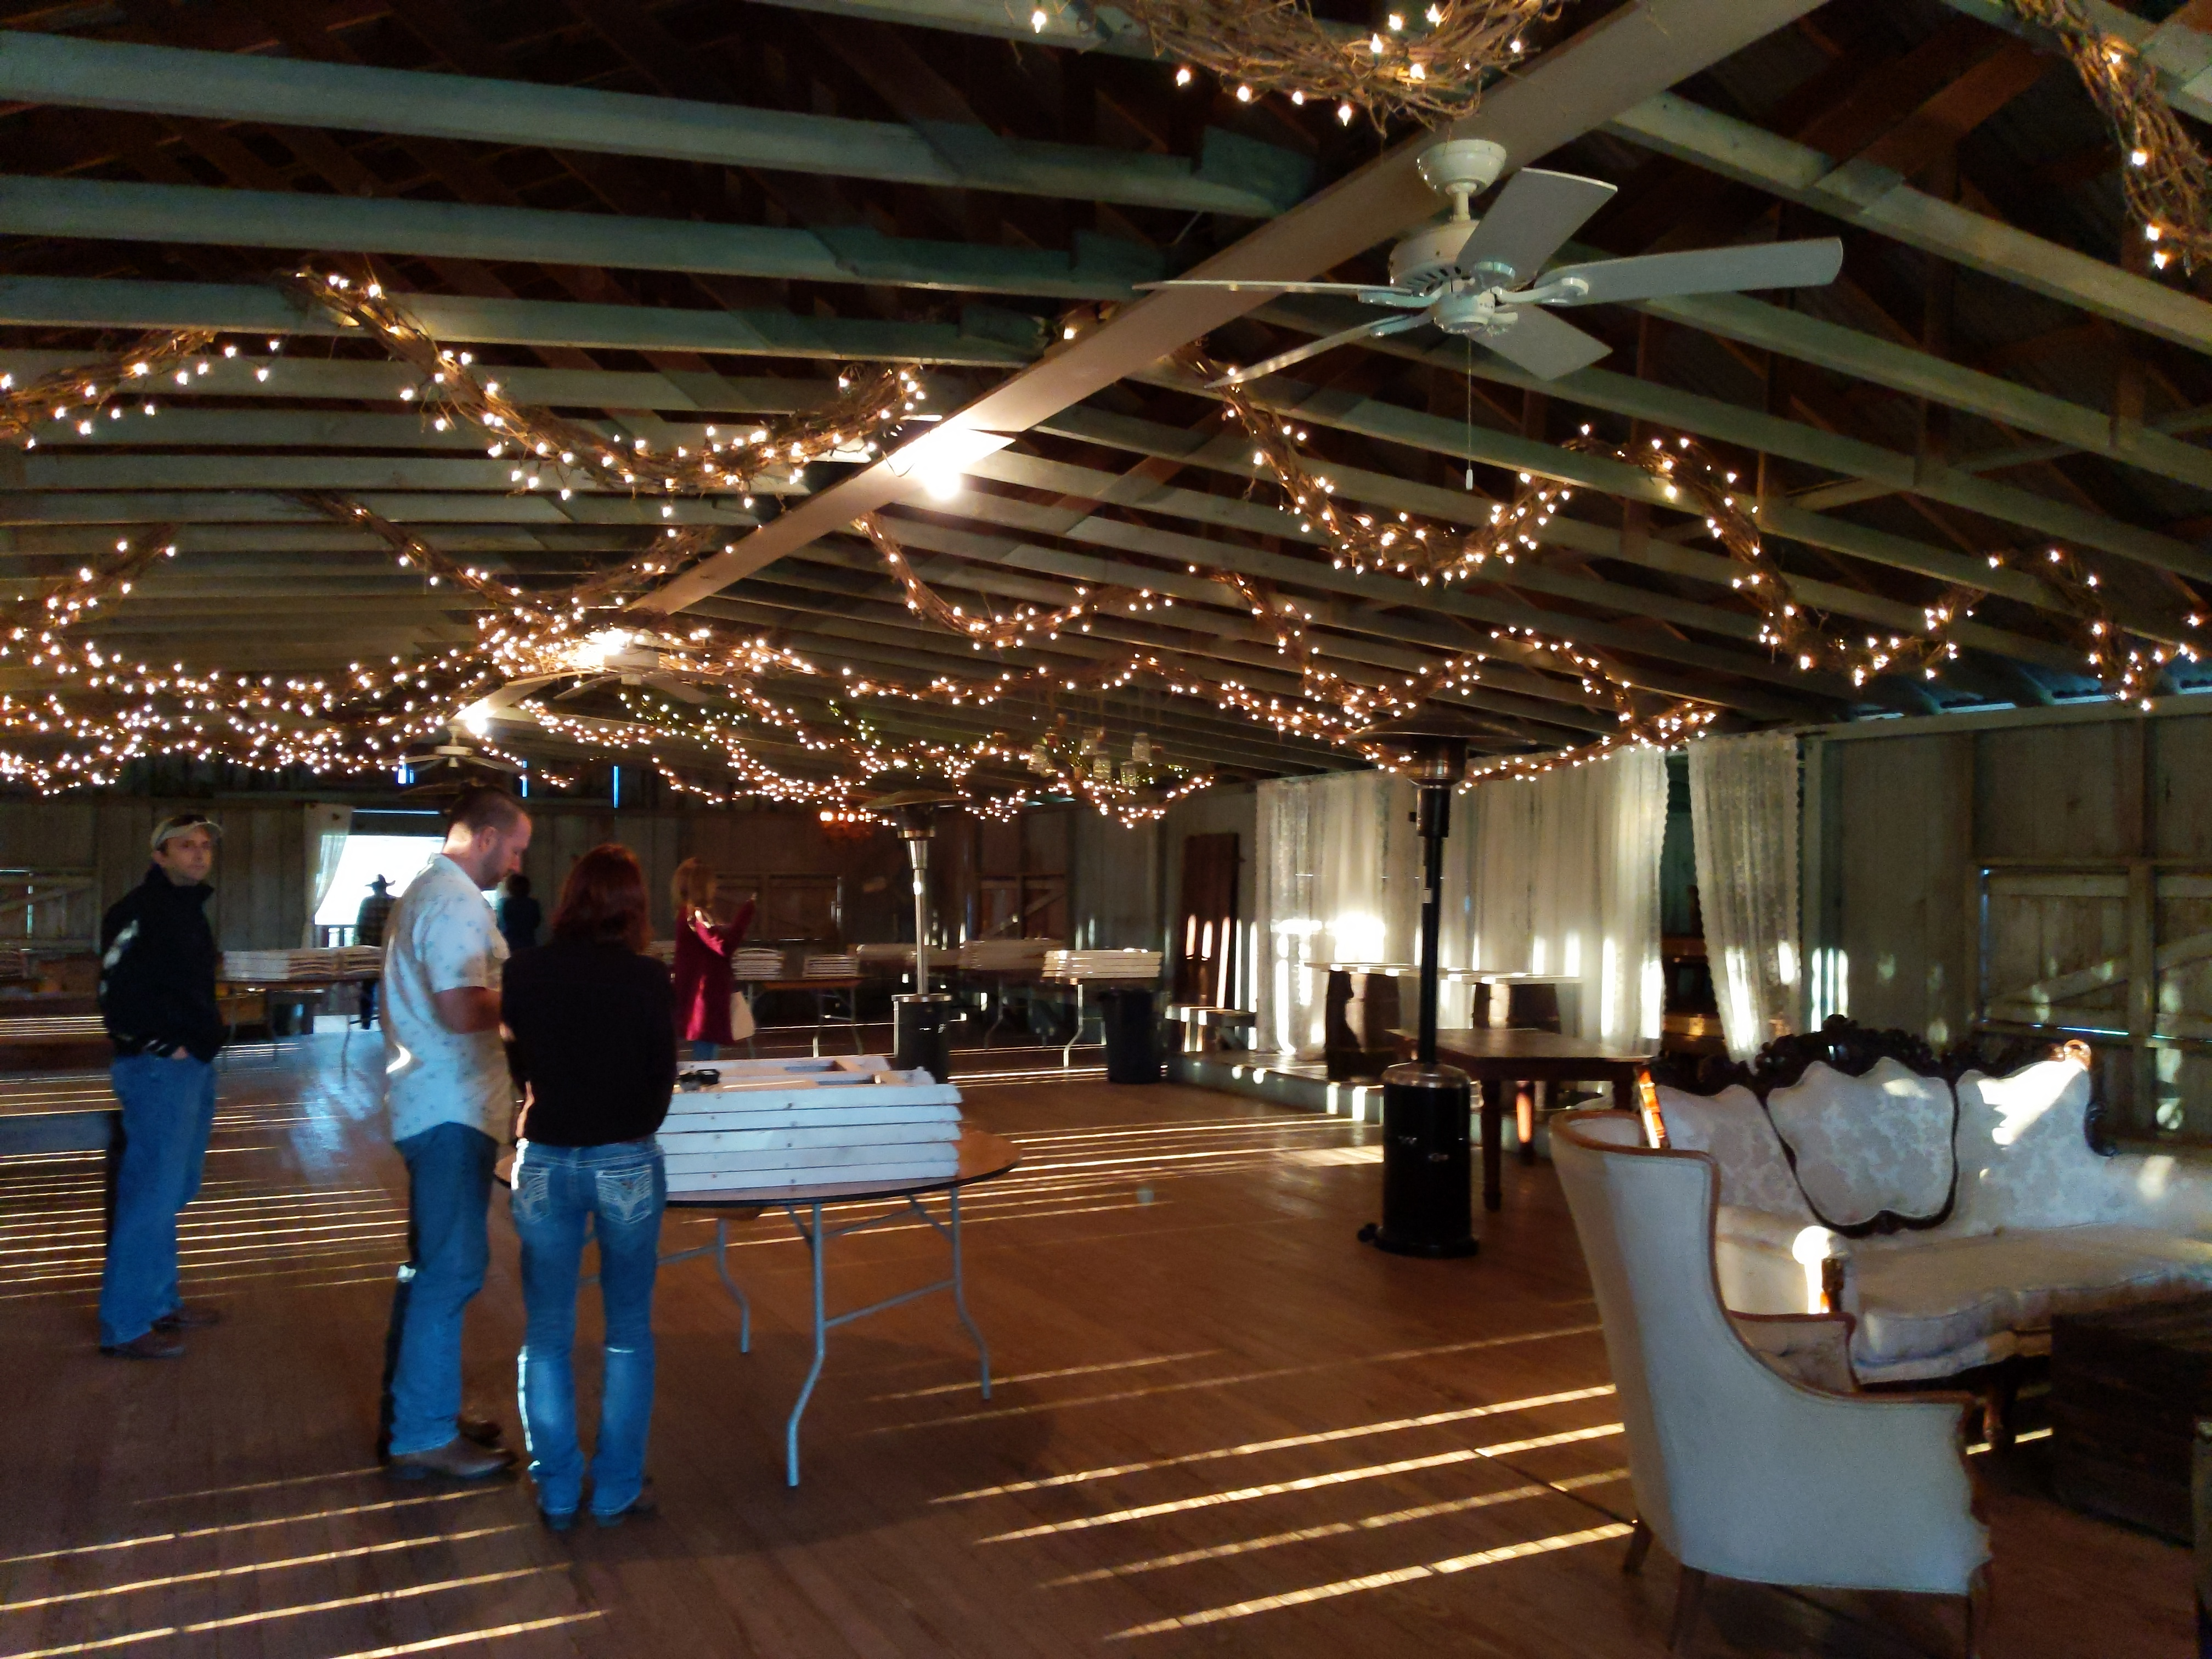 Venue wood floor with couch reception and tables set for wedding. Small white lights draped over the exposed ceiling beams